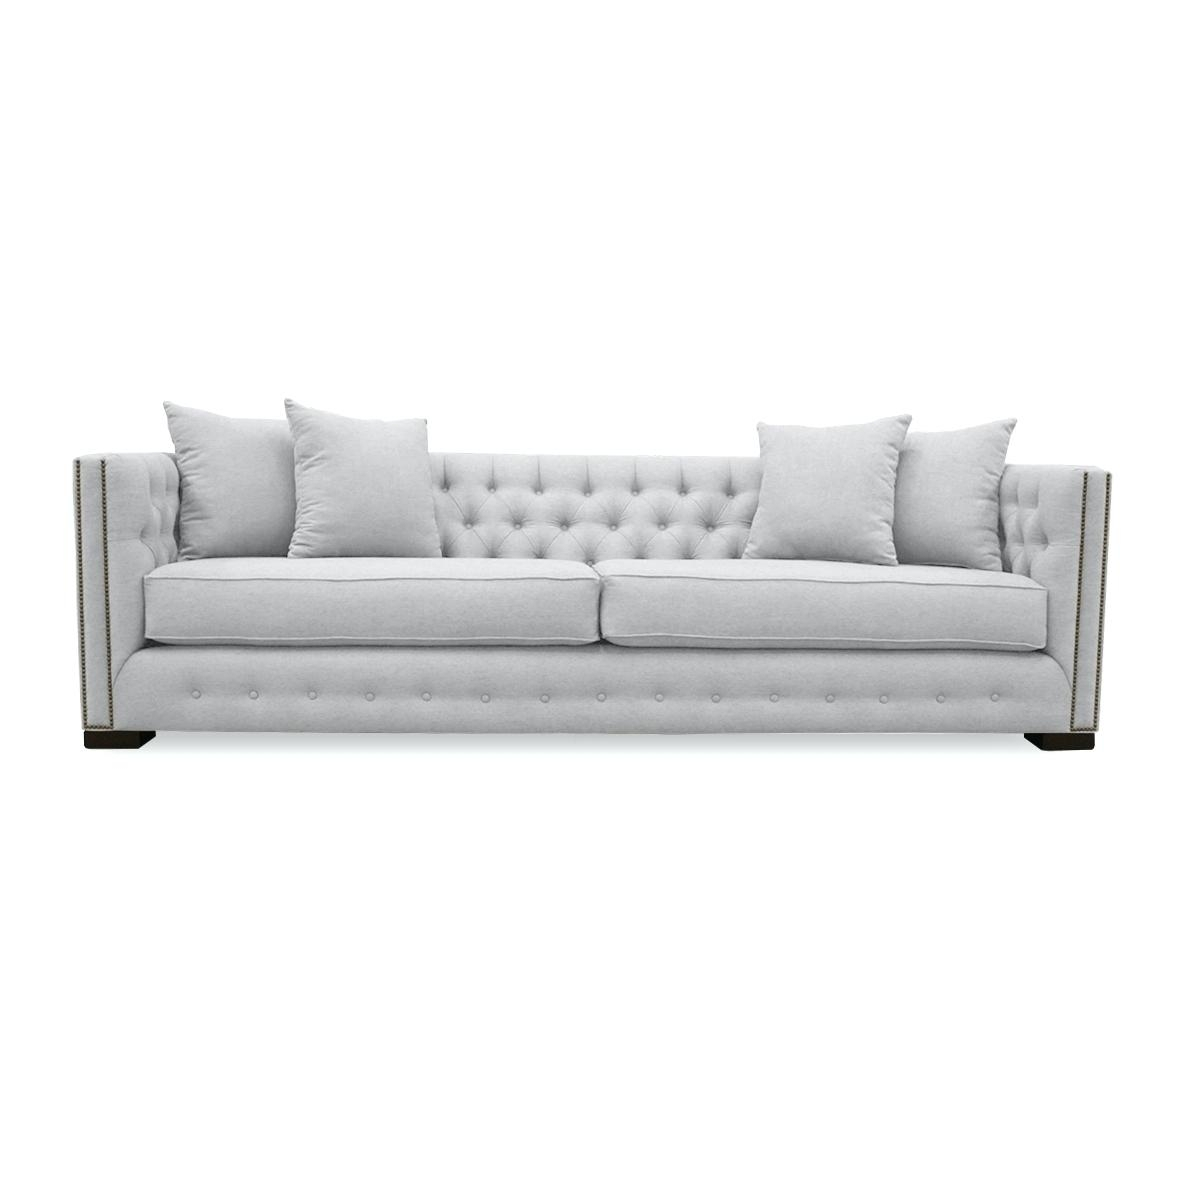 Featured Image of Salt Lake City Sectional Sofas